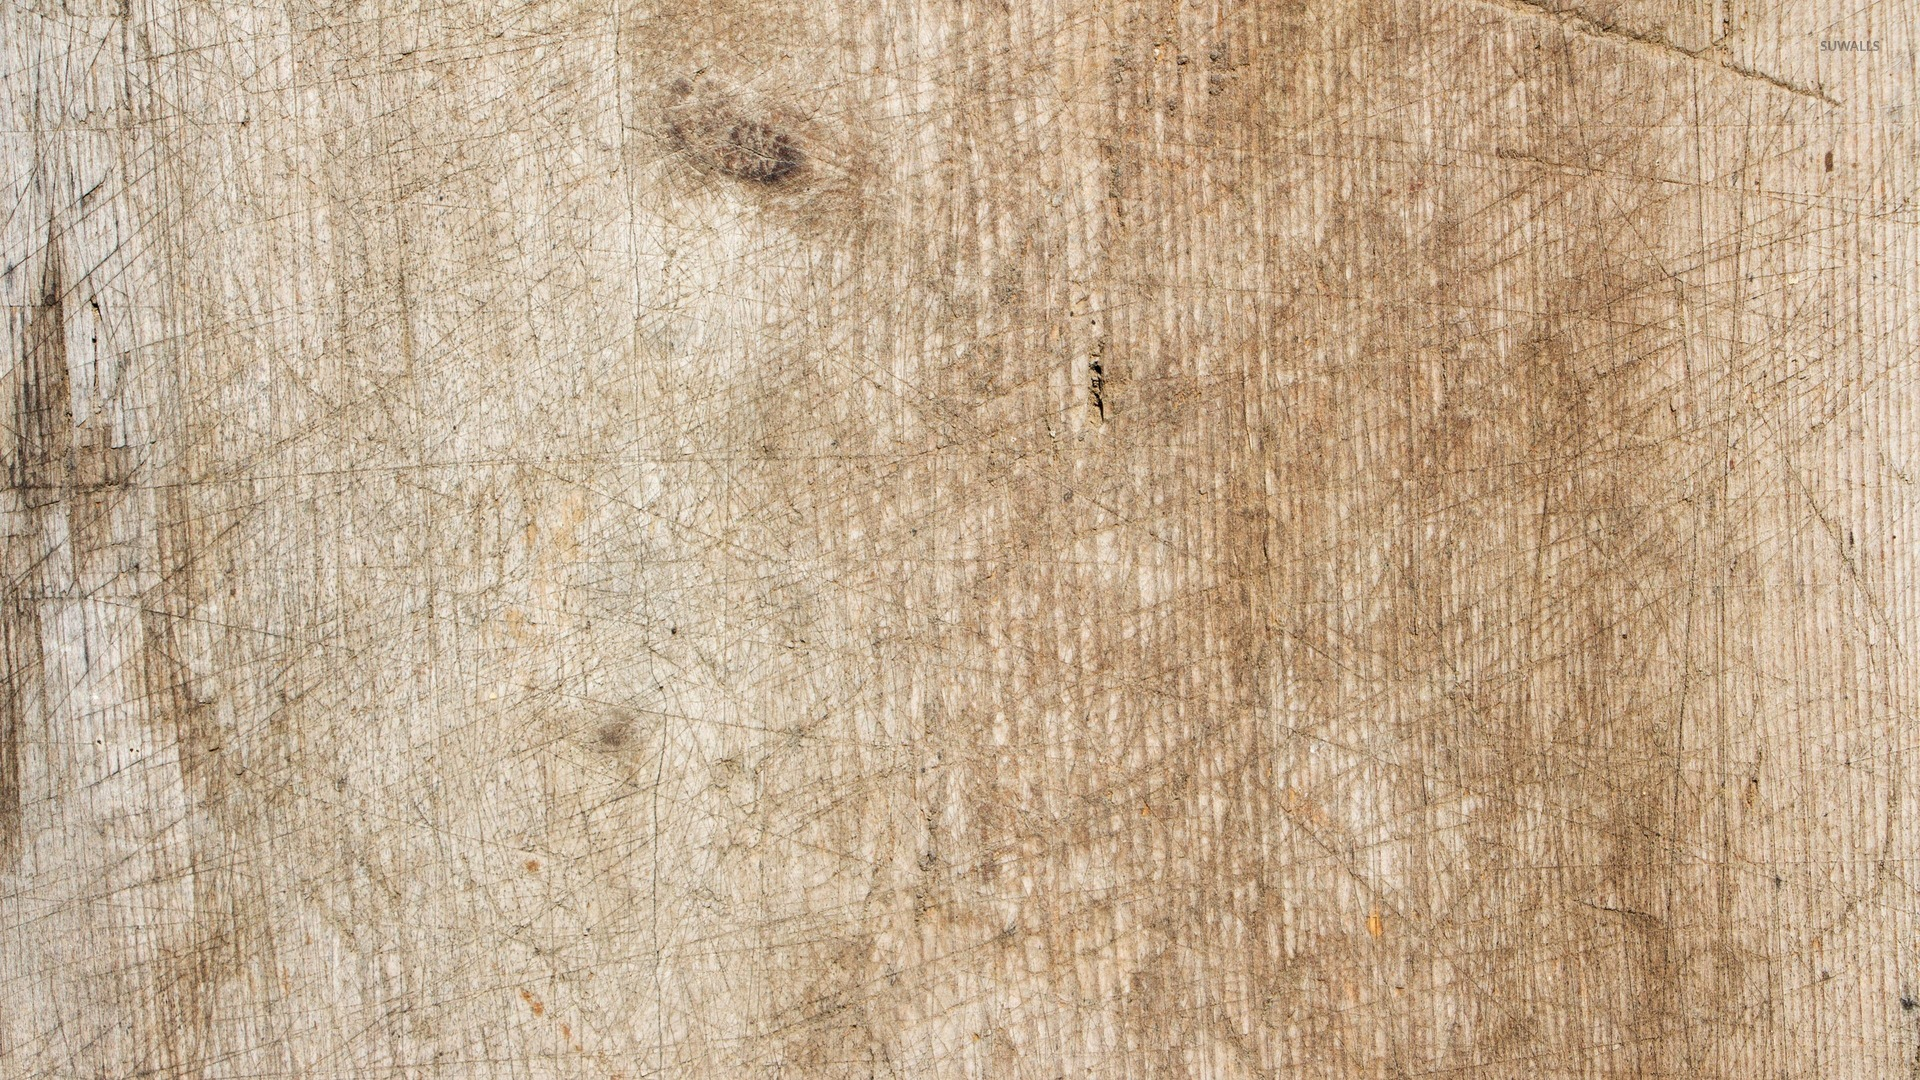 scratches on old wood wallpaper photography wallpapers Seamless Stone Texture Wood Plank Texture Seamless